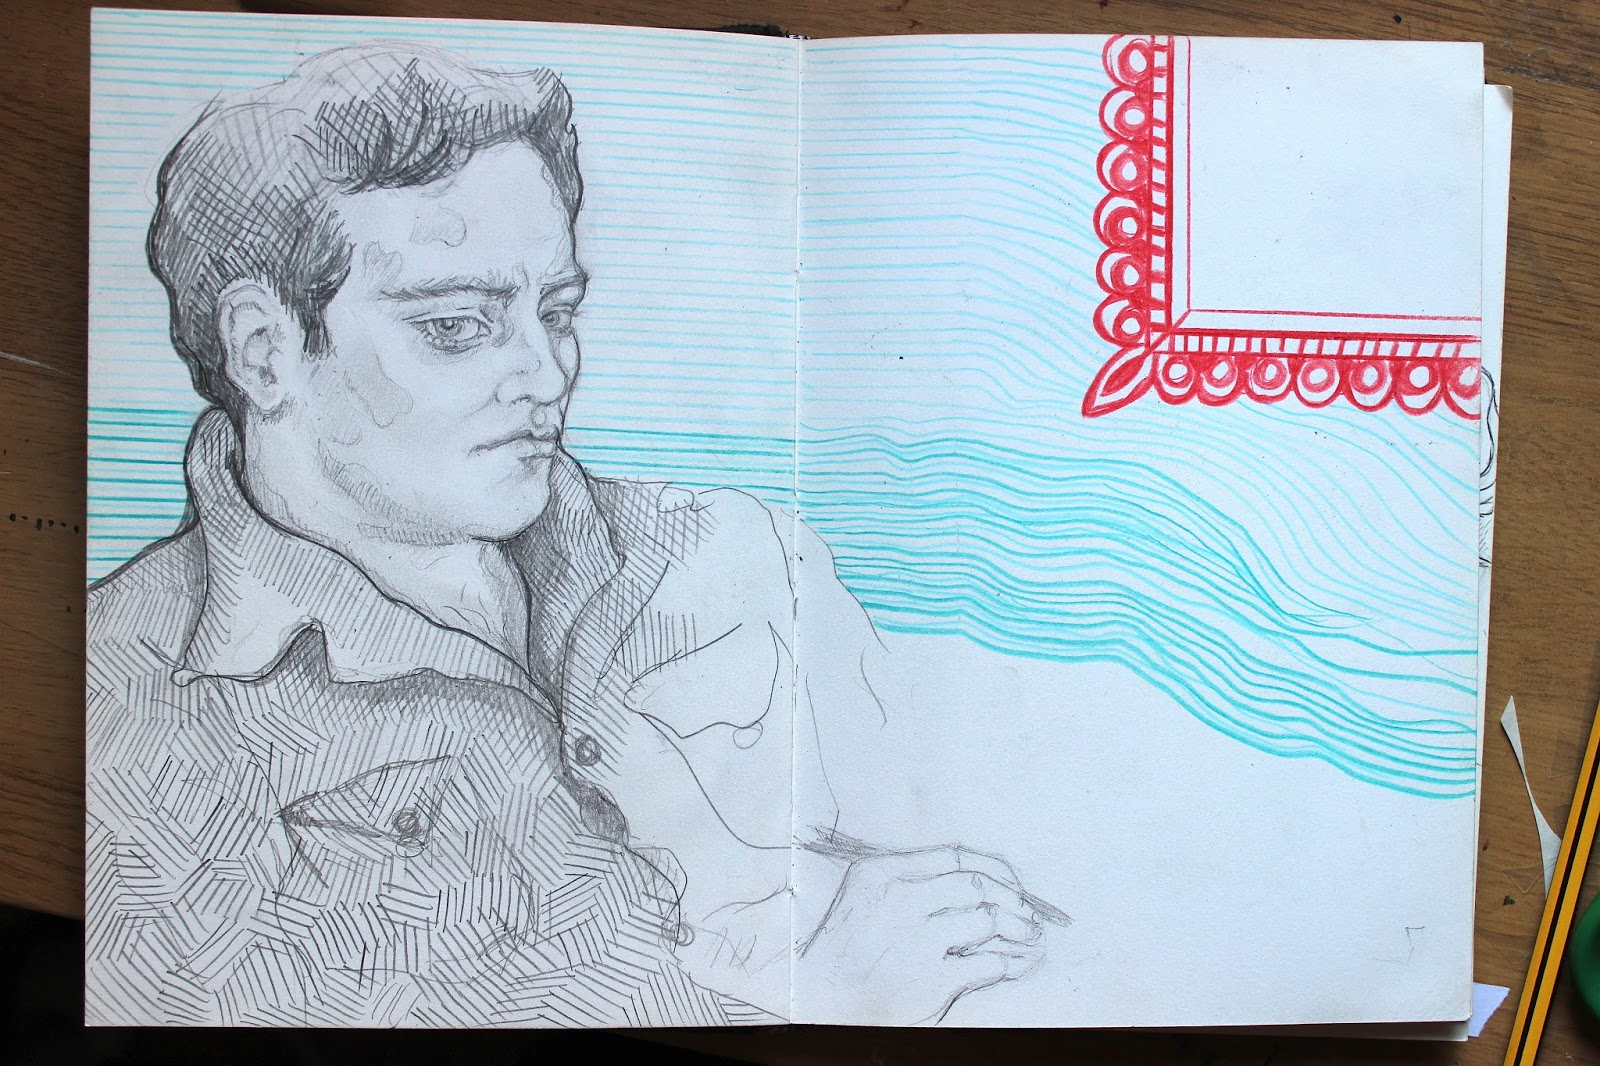 Sketchpad Notebook Sketch Drawing Pencil Colour Portrait Man in Shirt